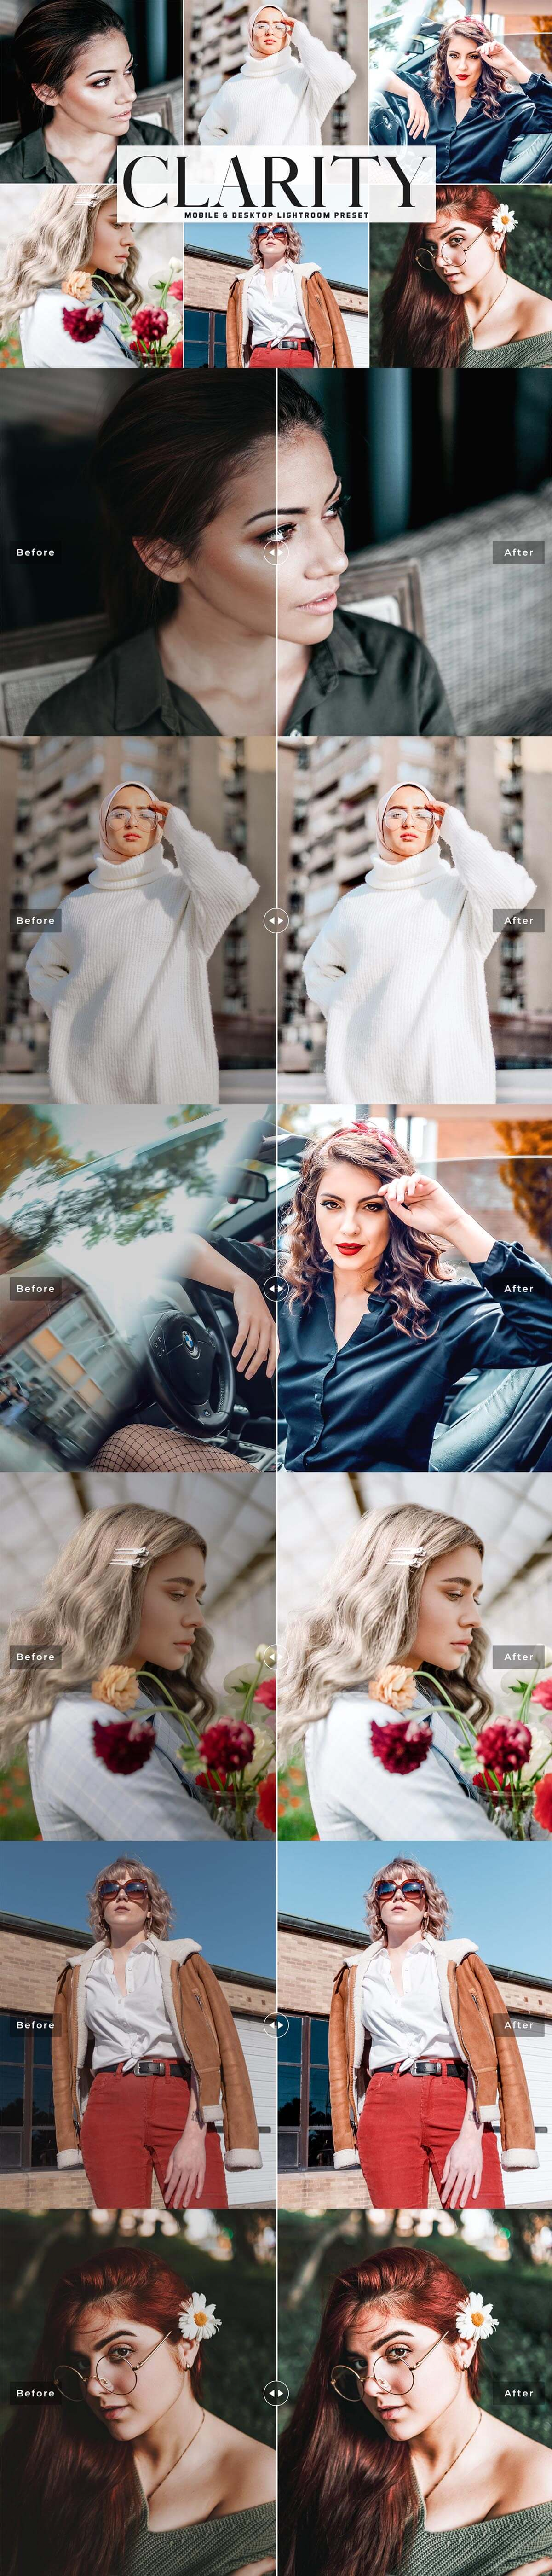 Free Clarity Lightroom Preset